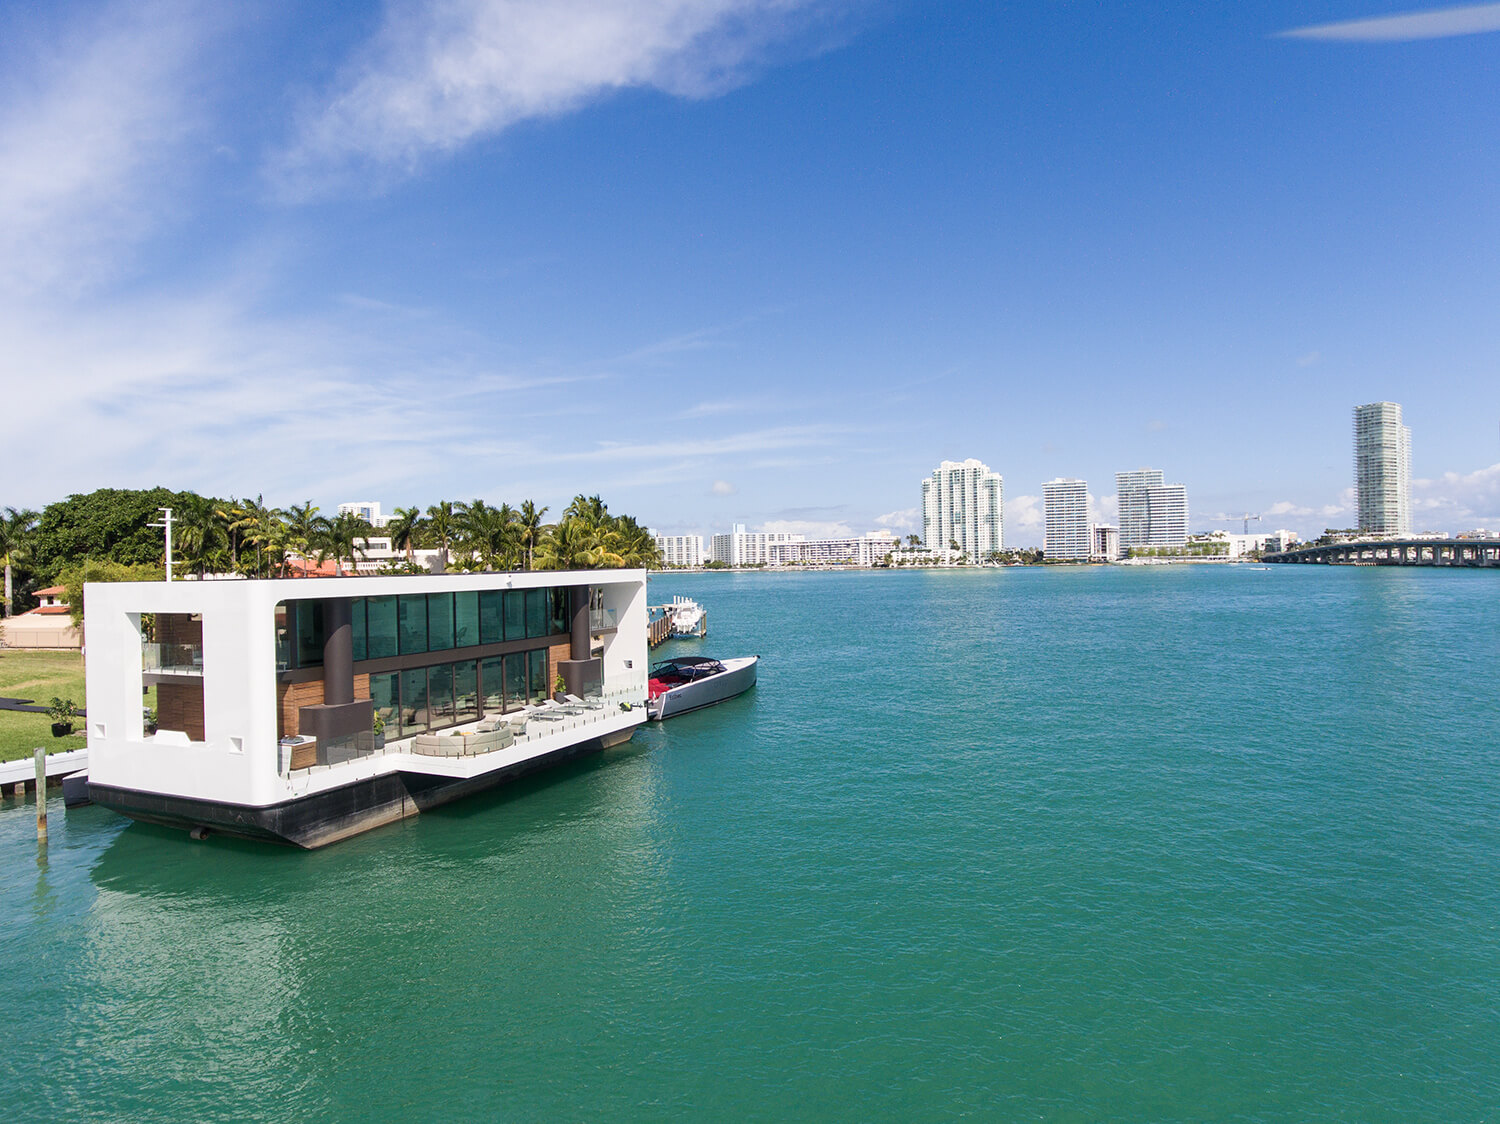 Floating Miami Mansion Propped Up On Hydraulic Stilts That Can Withstand 155mph Hurricanes And Turns Rain Into Drinking Water Goes On Market For $5.5m